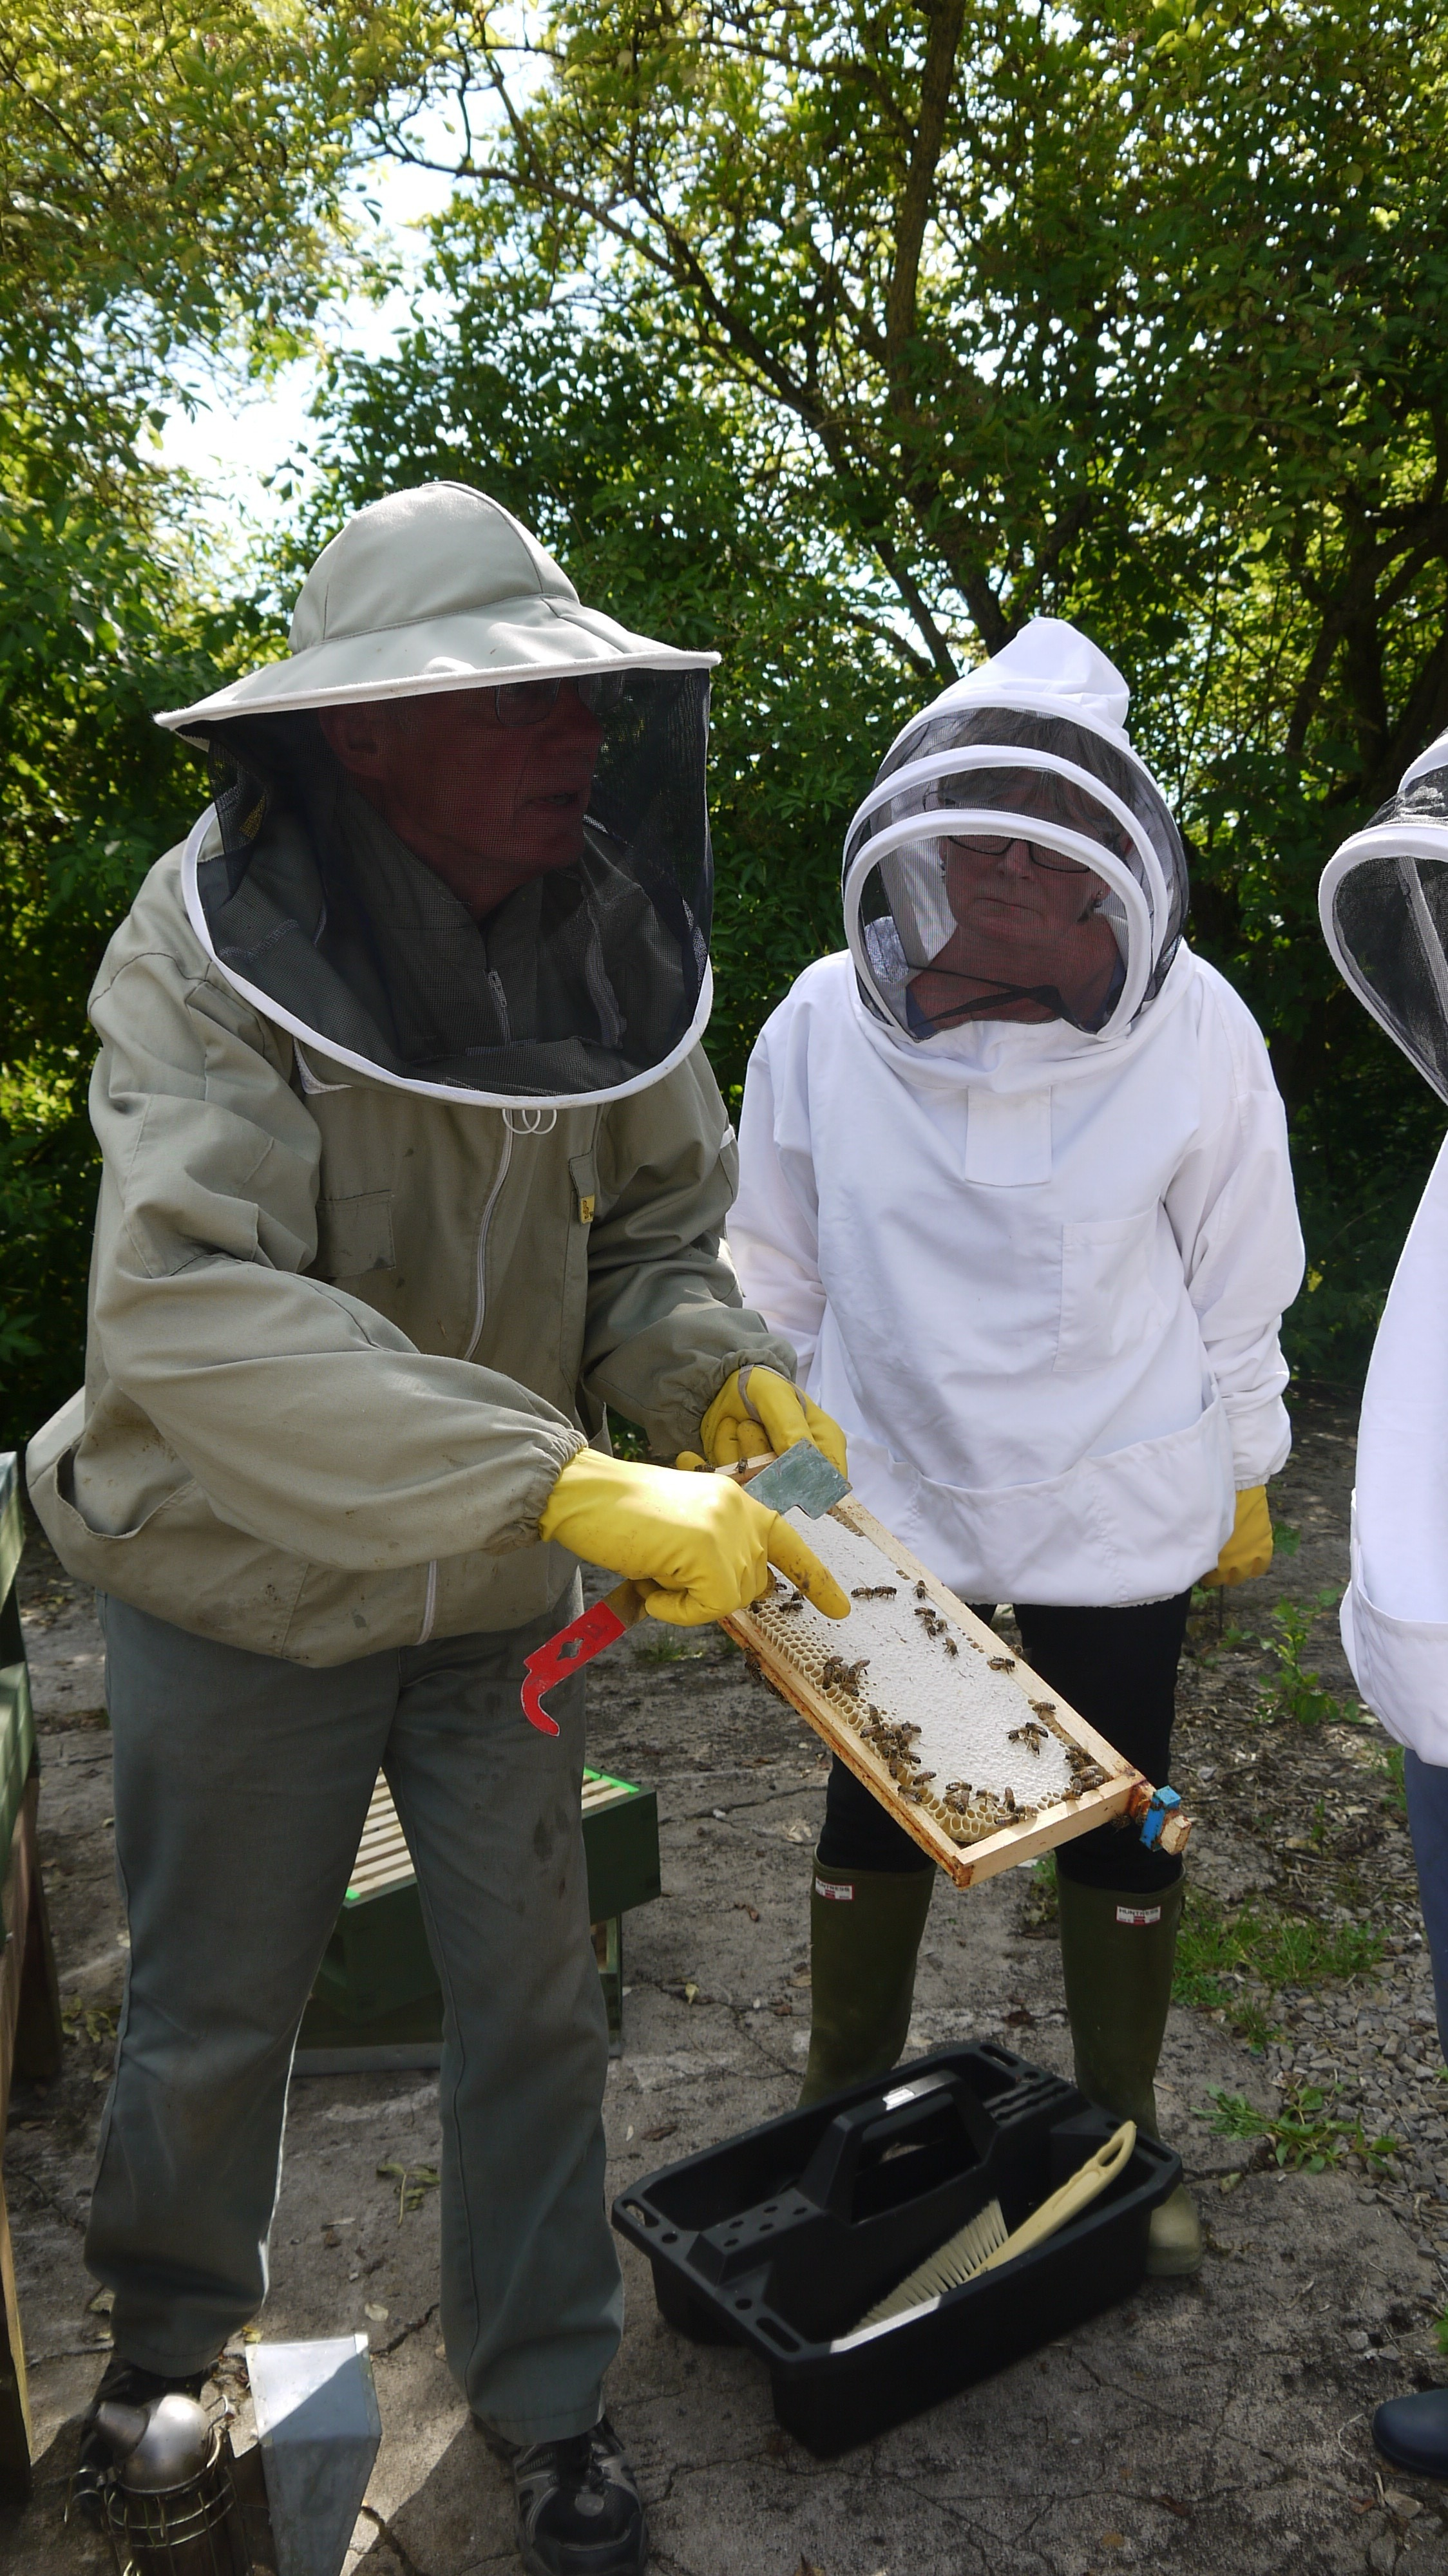 Bee keepers keeping safe after new suits donated